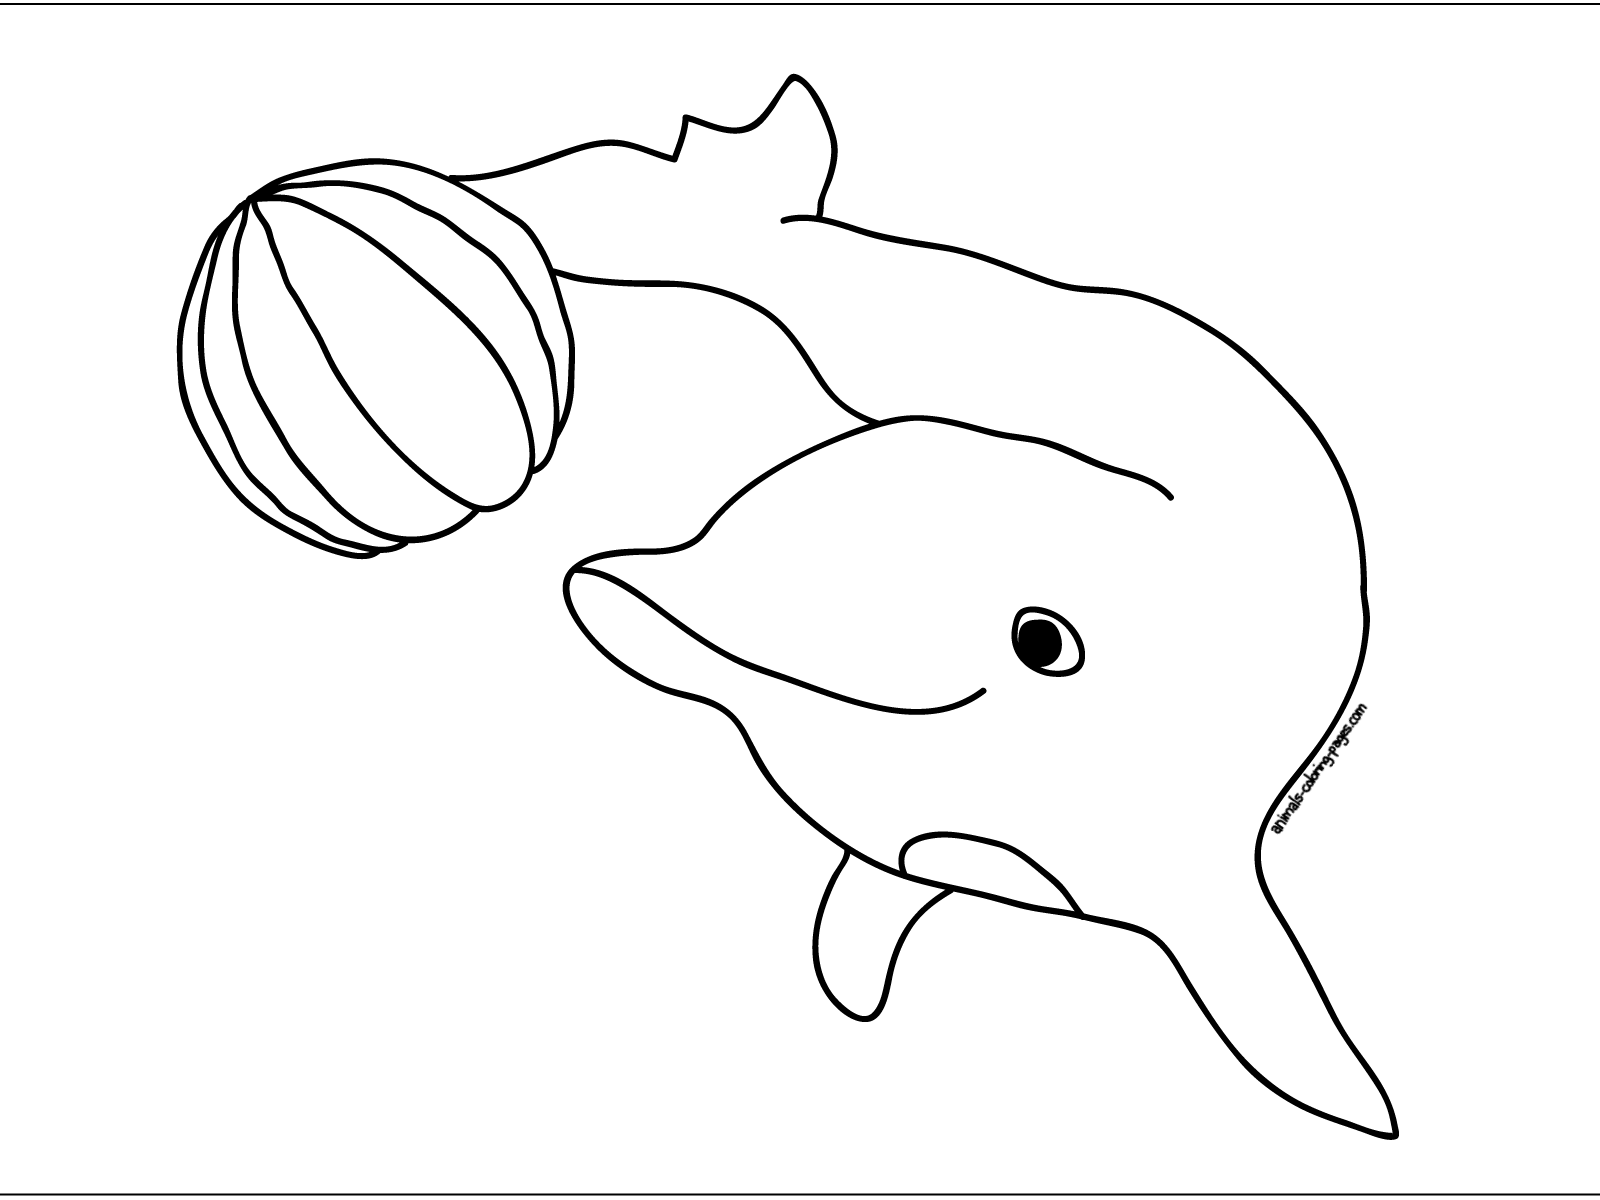 Learn Social Bonds By Dolphins Coloring Pages - Coloring Pages